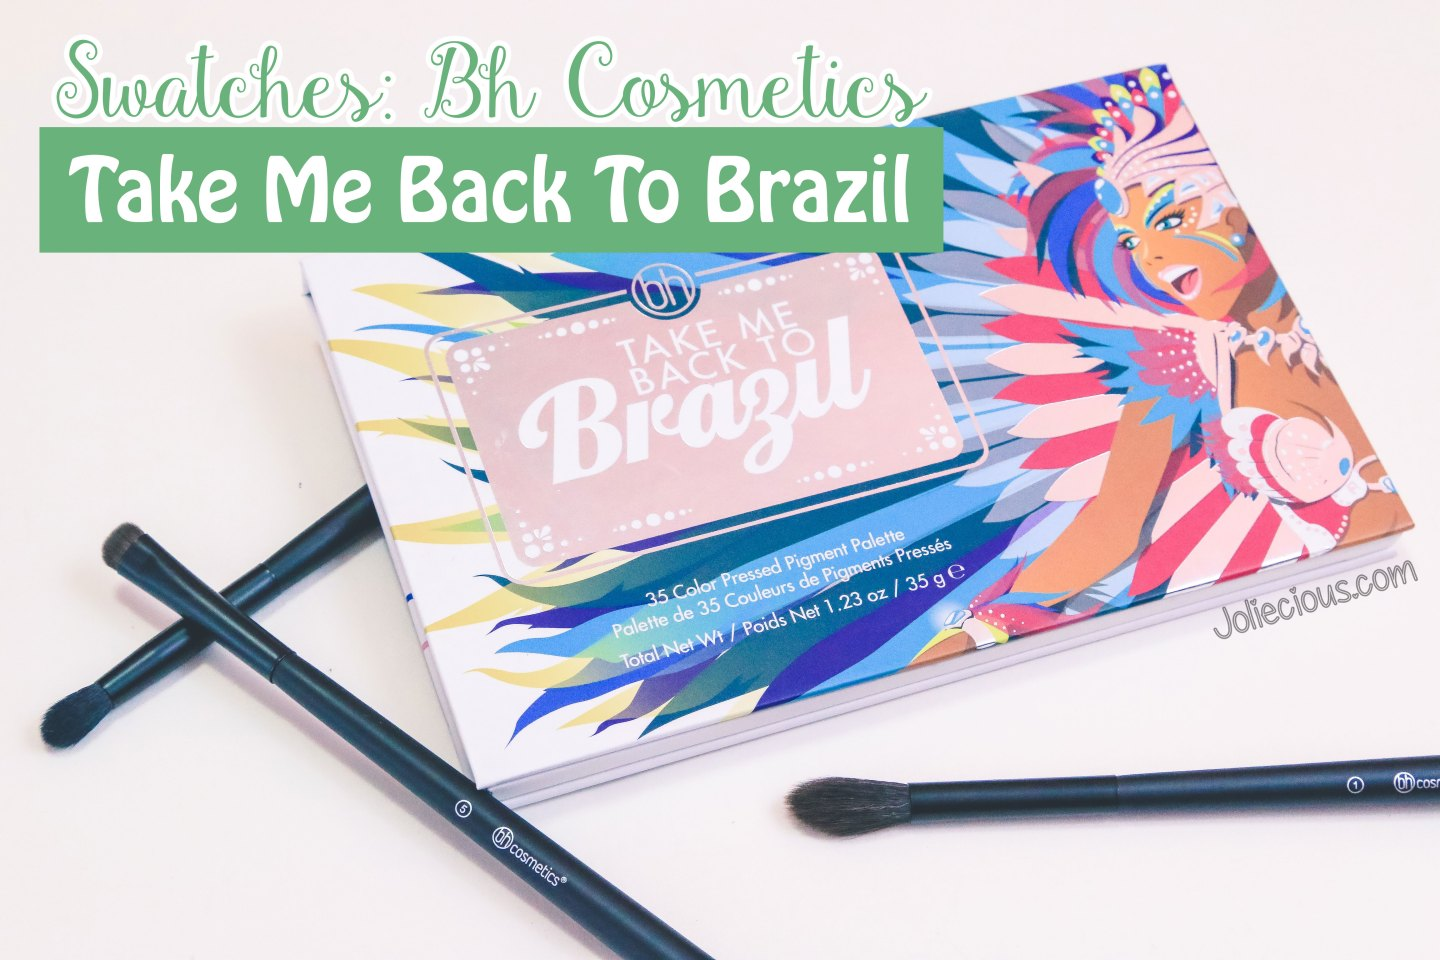 Bh Cosmetics Take Me Back To Brazil Swatches